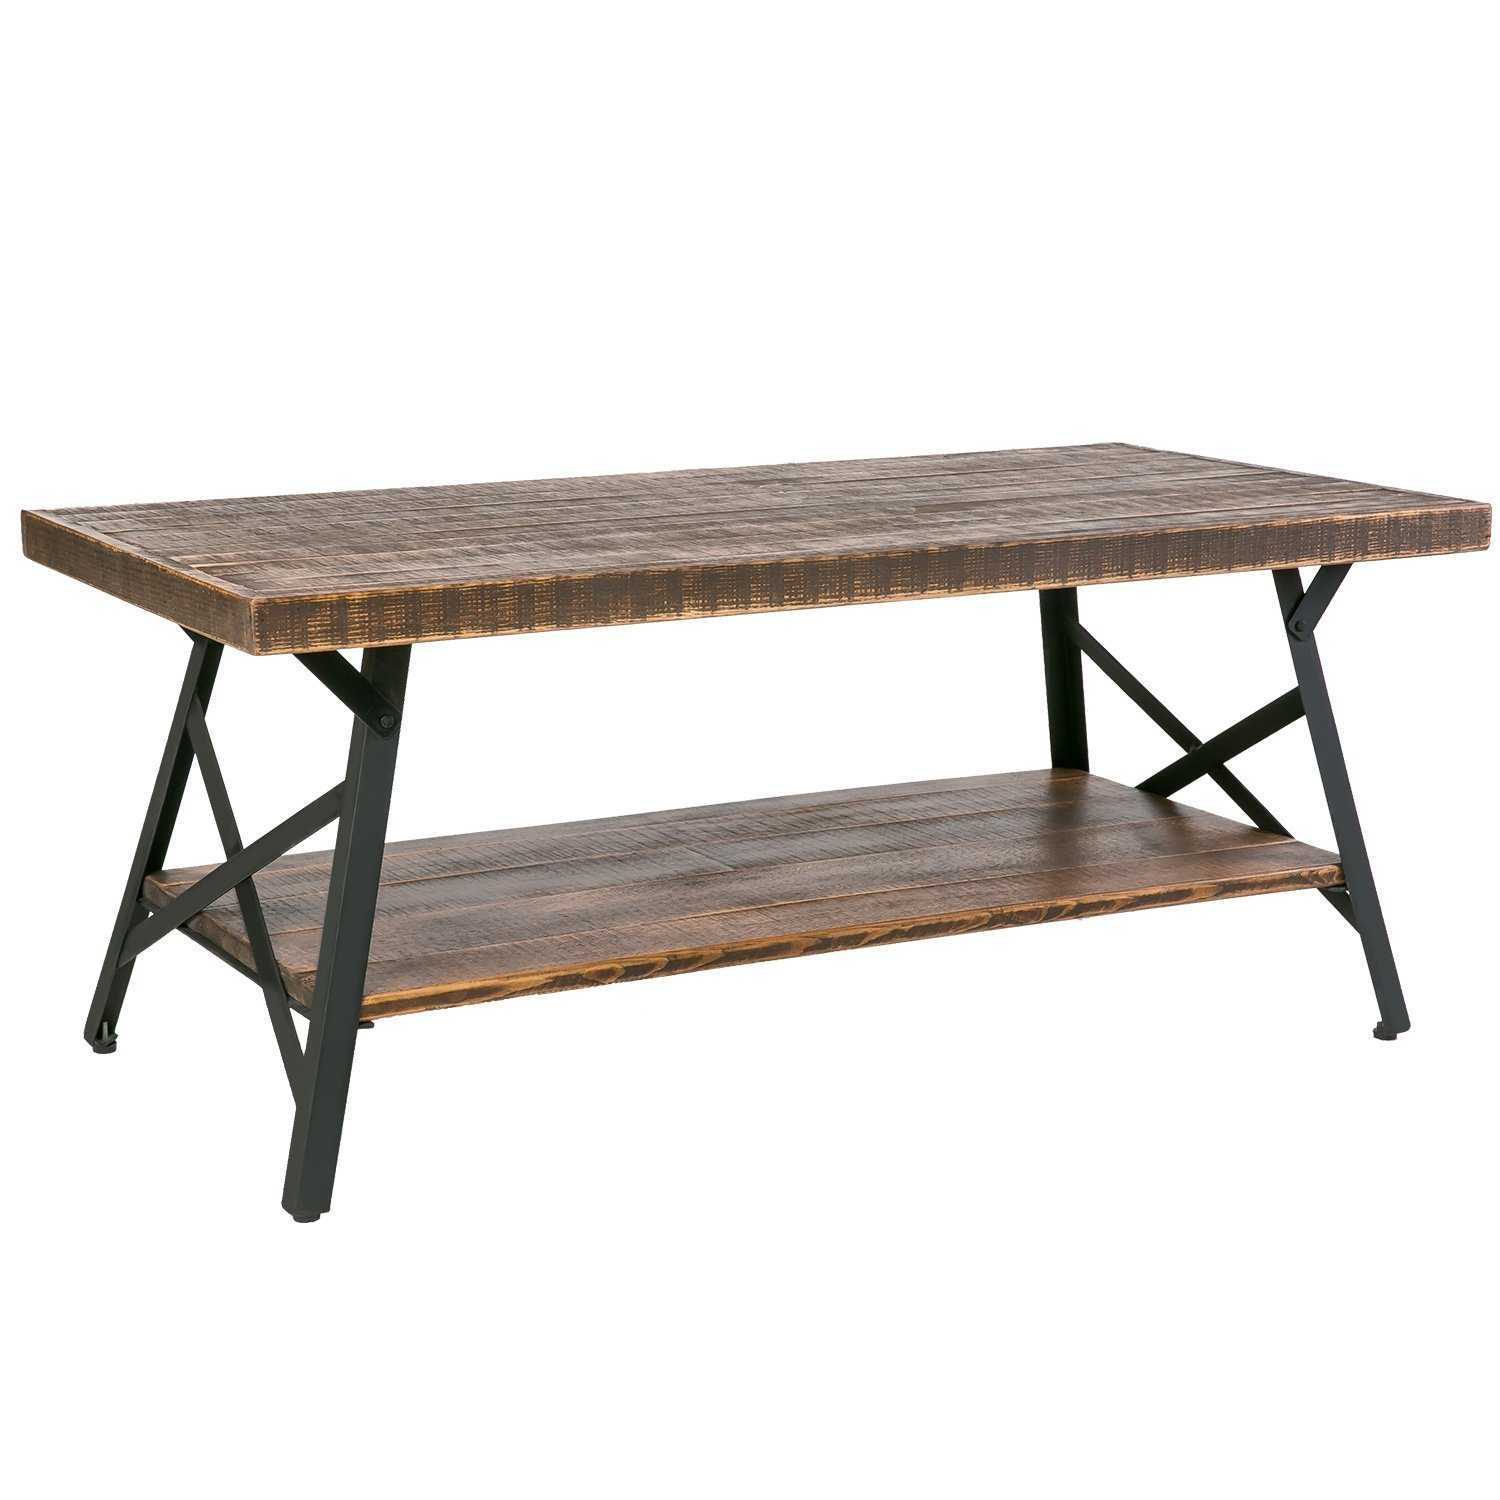 End Tables With Metal Legs Rustic Wood Coffee Table With Metal Legs End Table Living